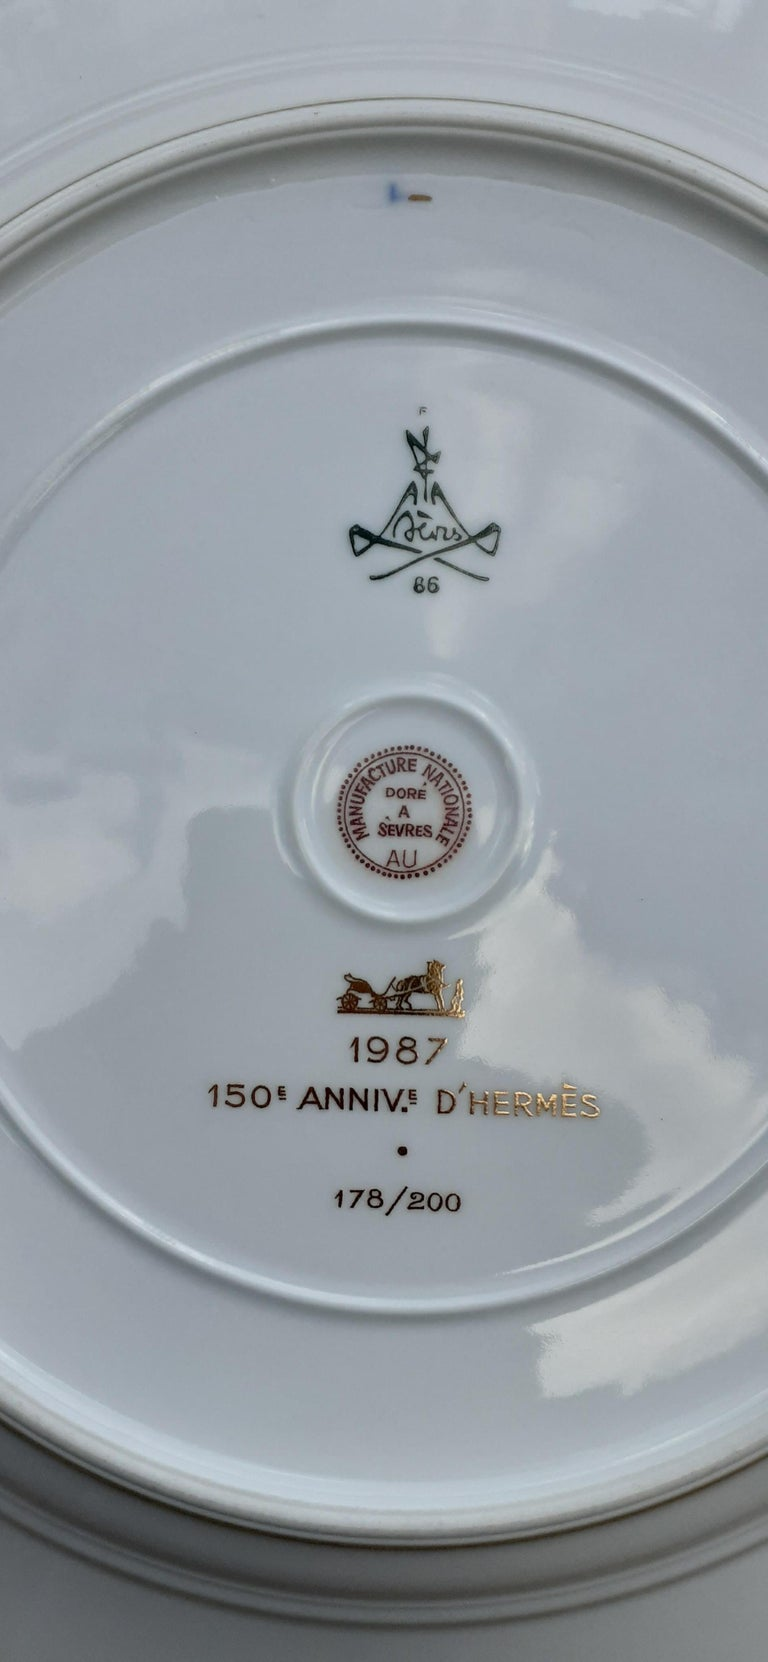 Exceptional Hermès Plate Dish Feux d'Artifice 150th Anniversary Only 200 Pieces For Sale 4